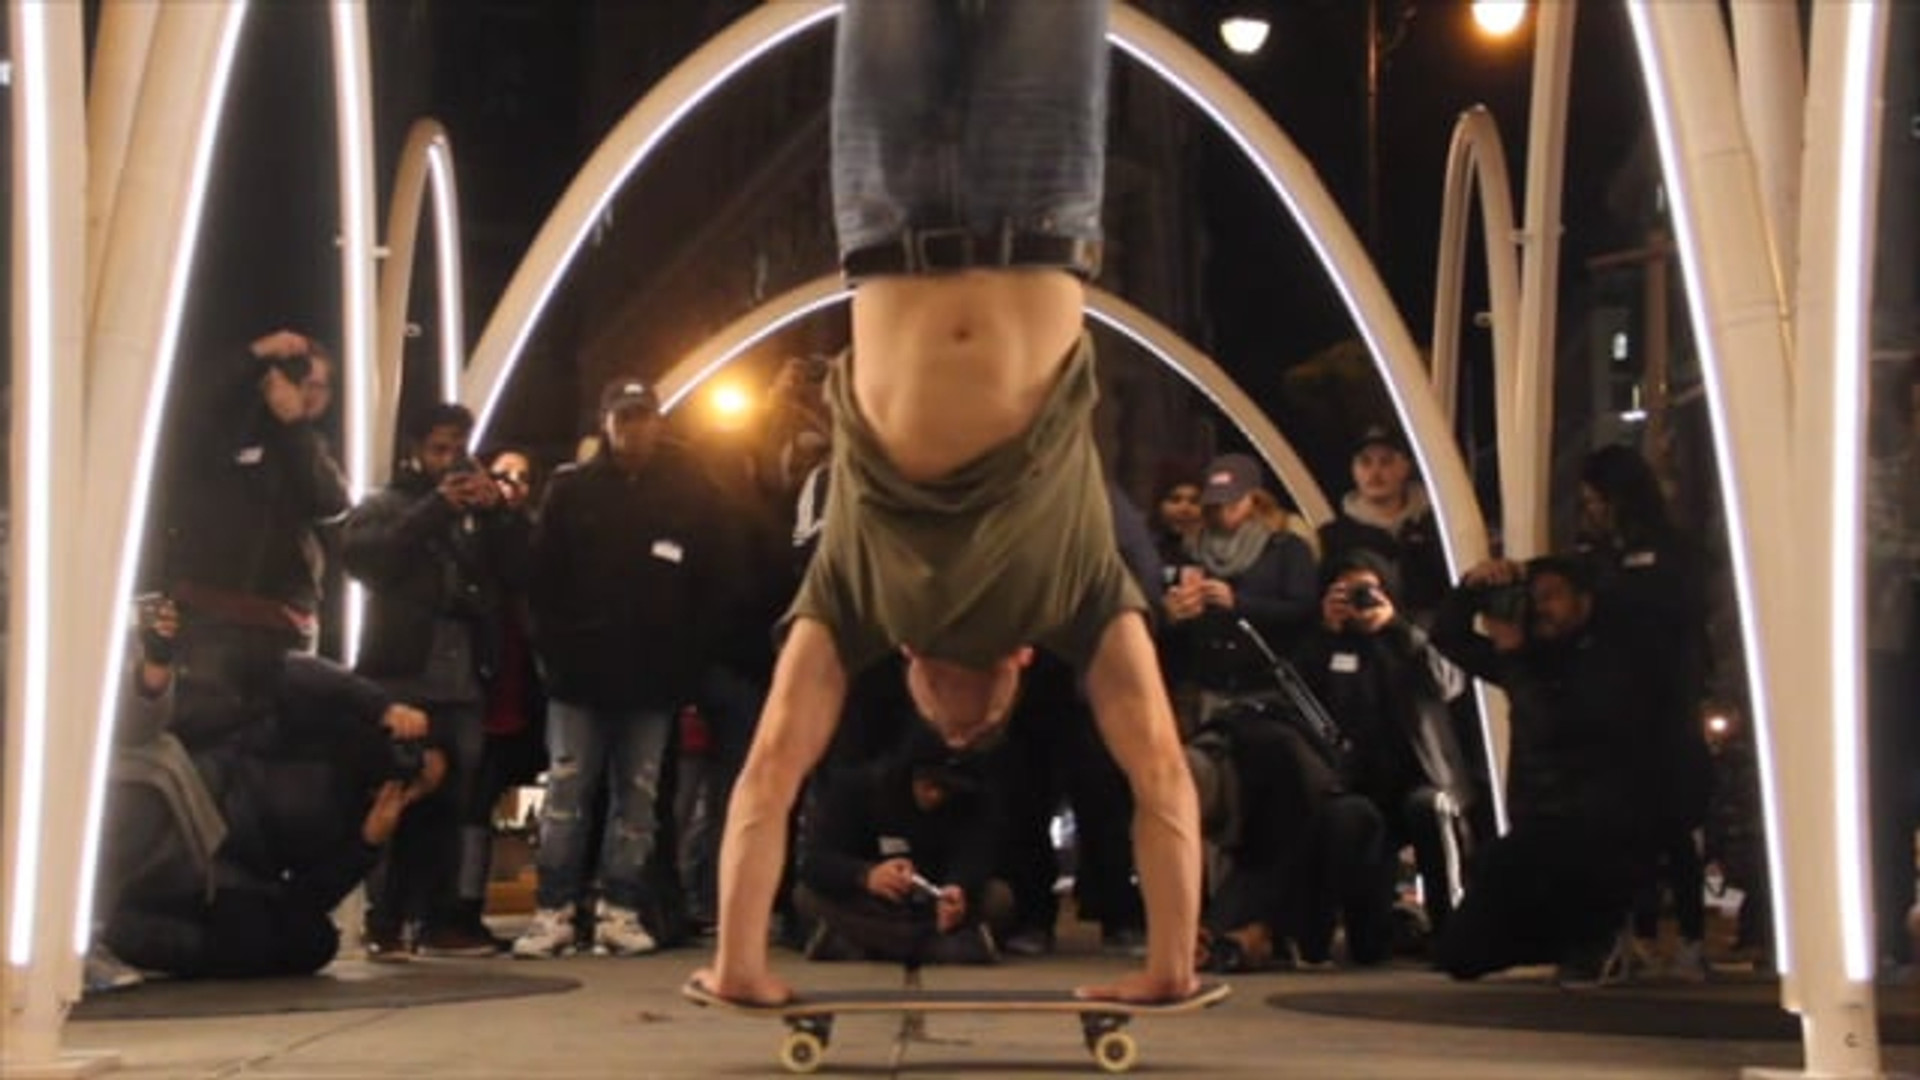 NYC's Flatiron District: Freestyle Skateboarding